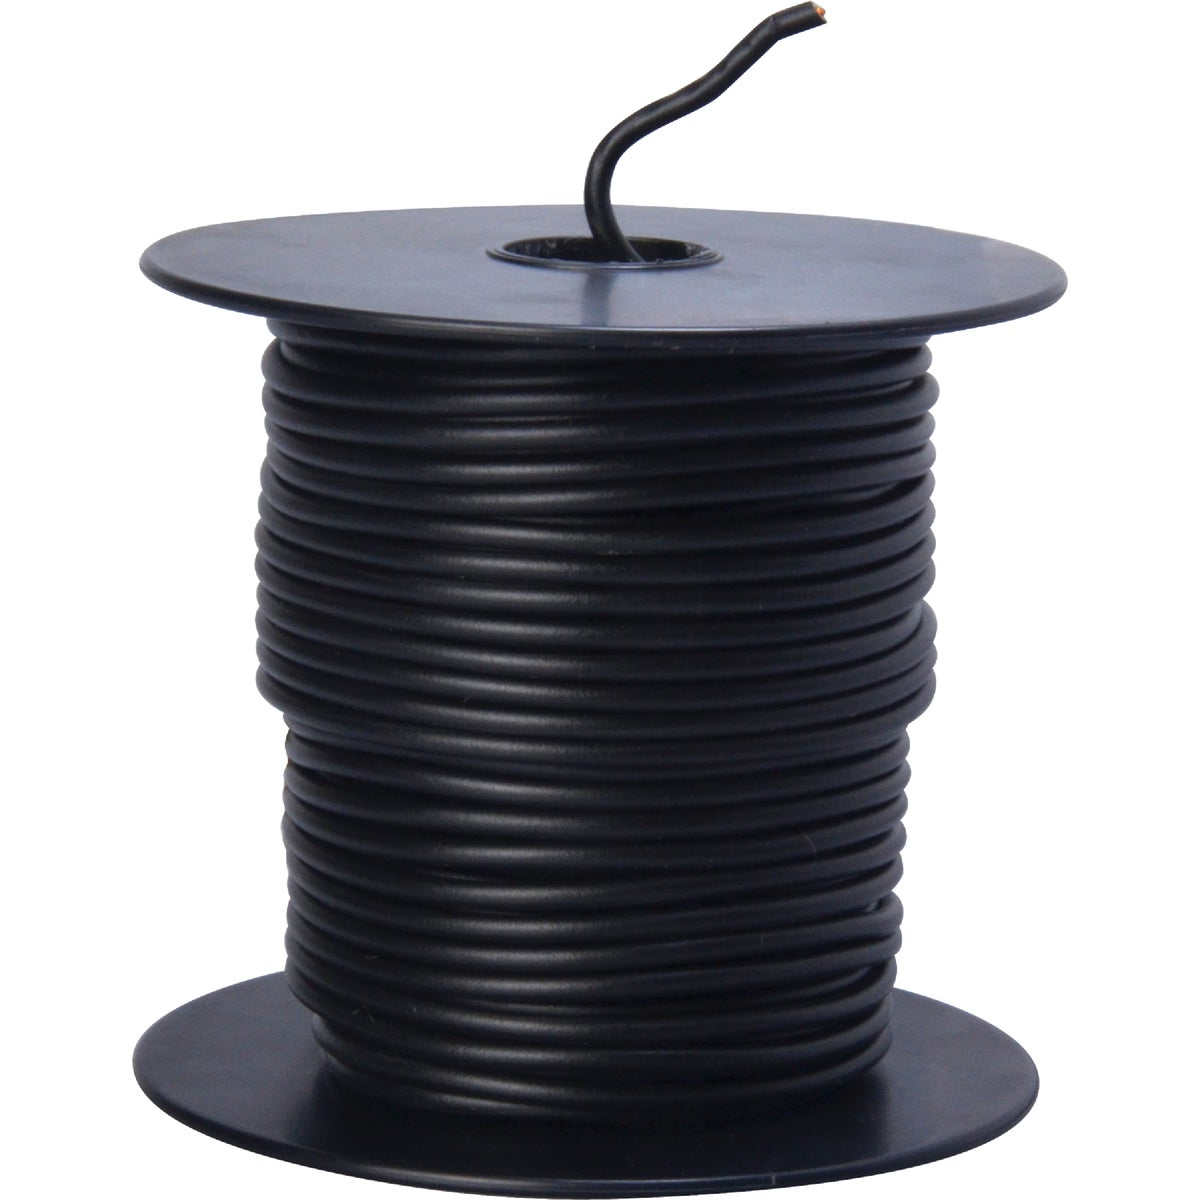 100' 16GA BLK AUTO WIRE - 16-100-11 by Woods Wire Coleman